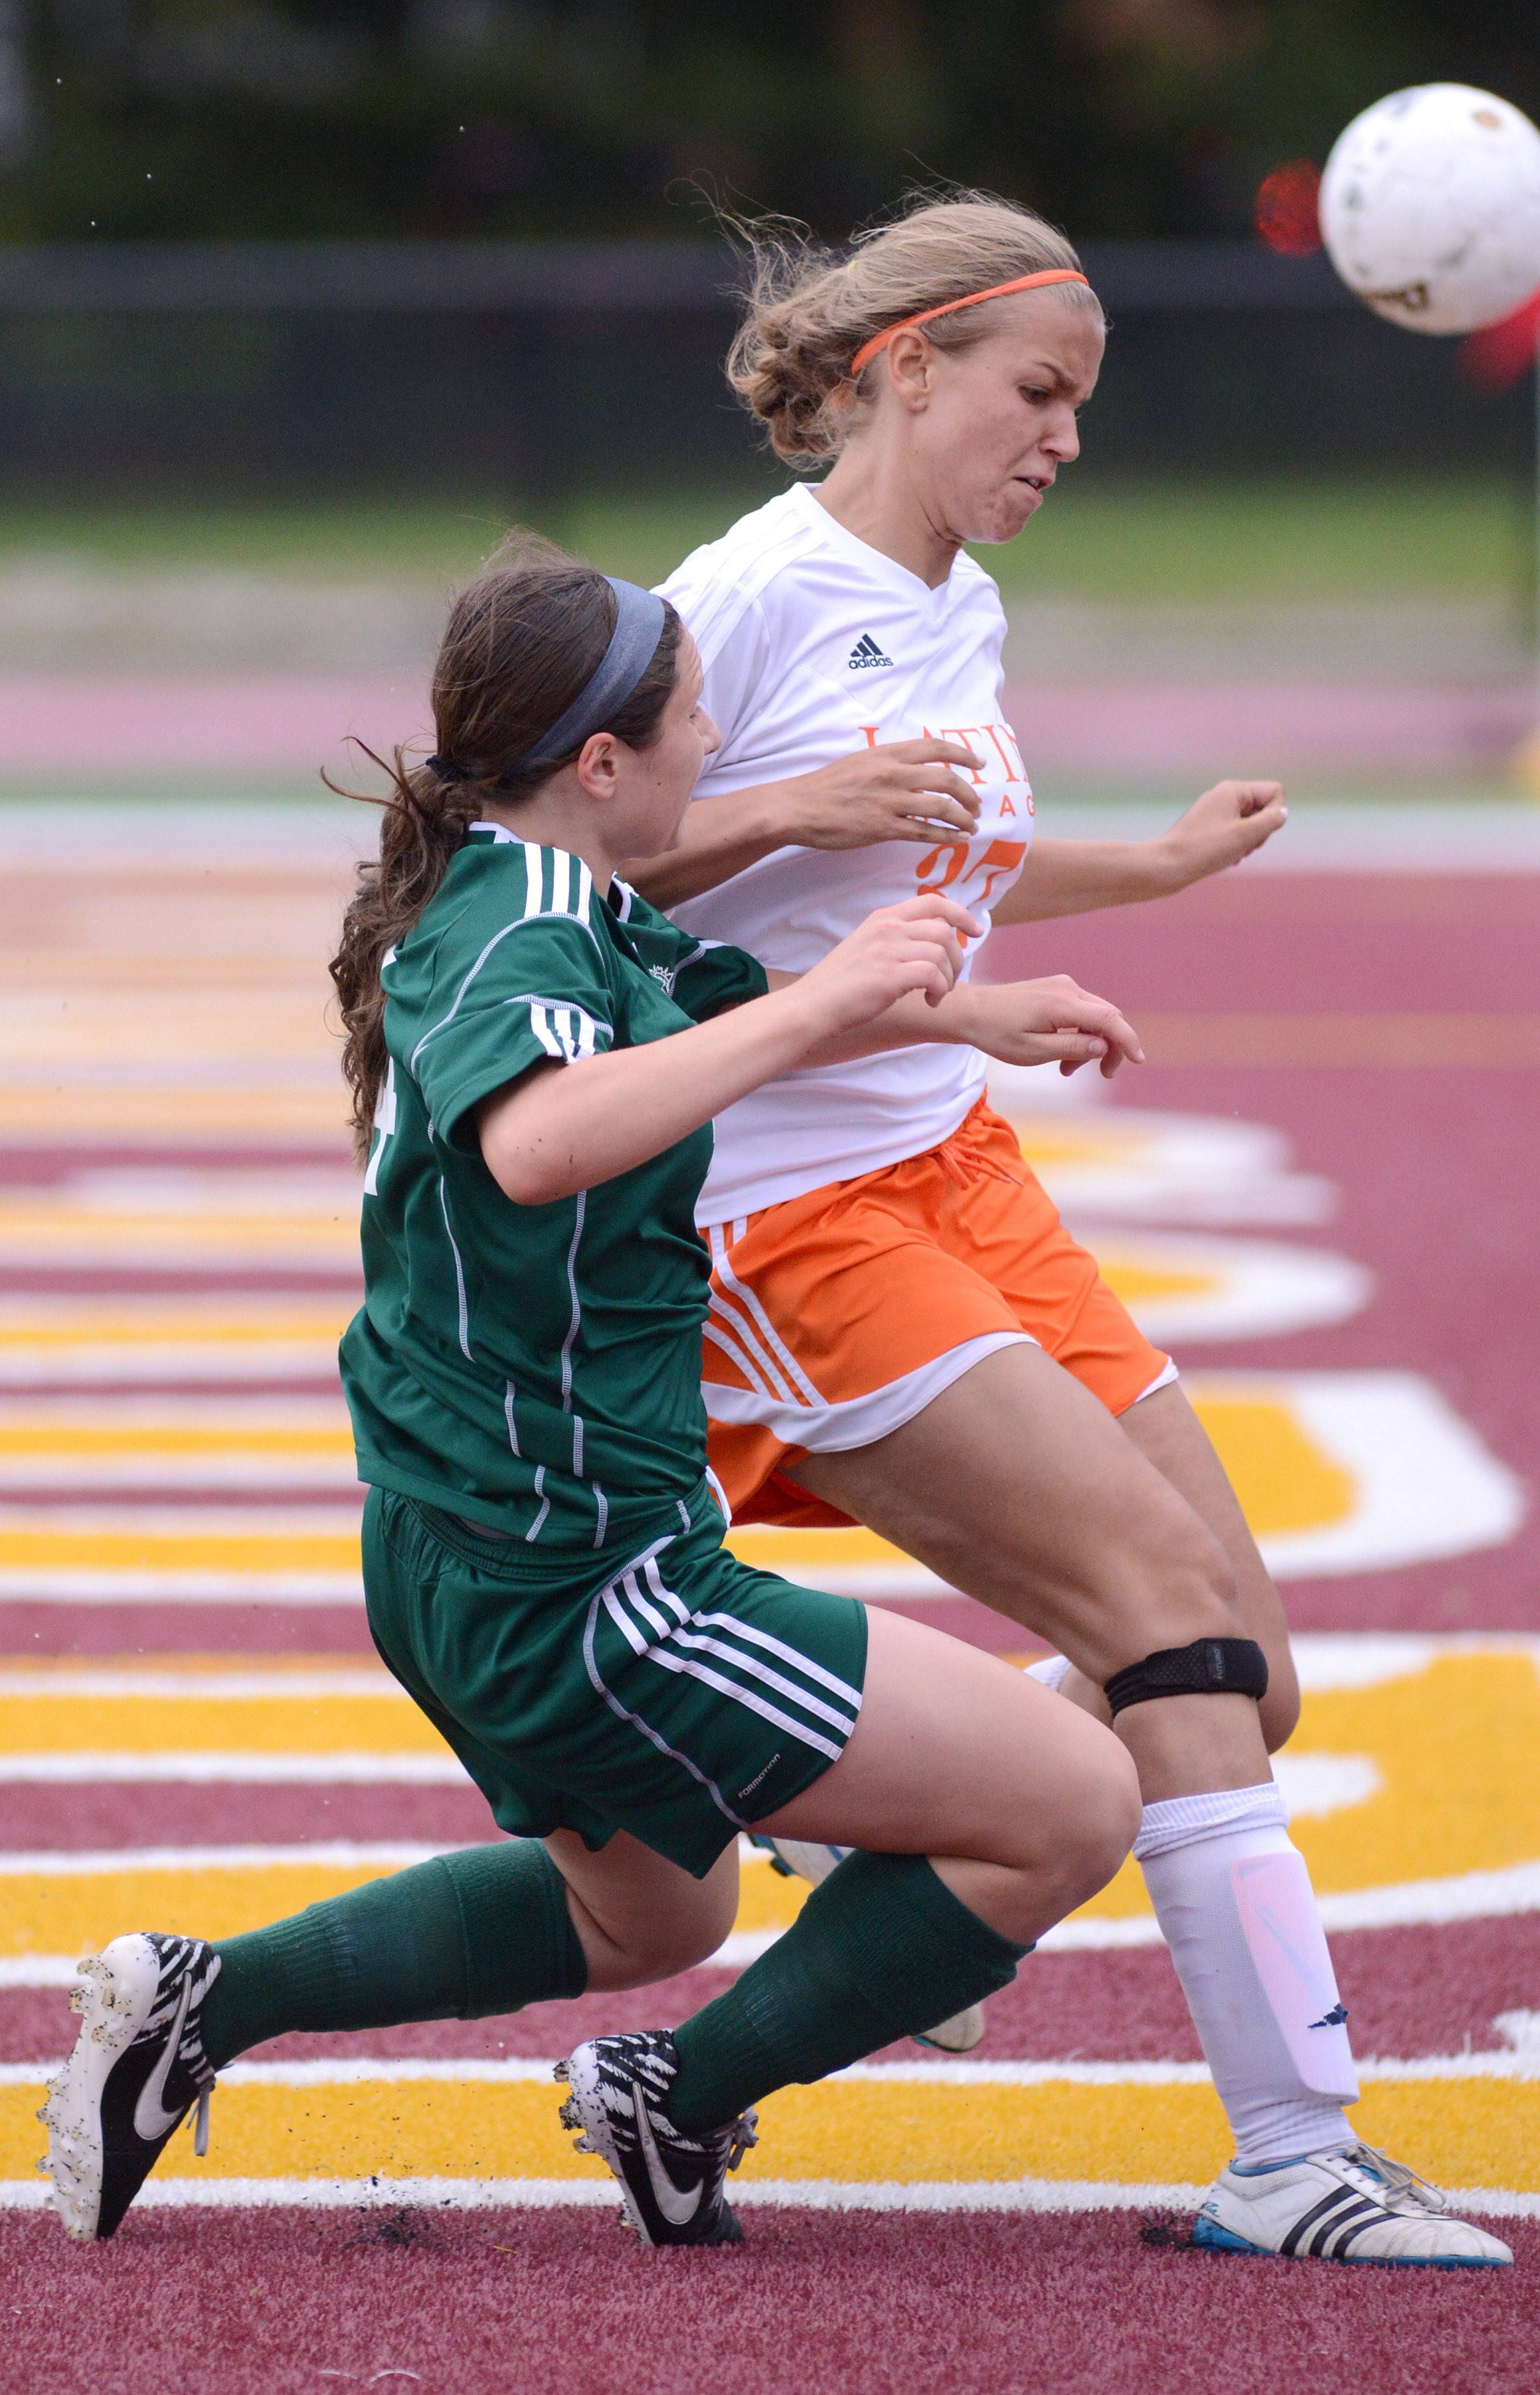 St. Edward's Alex Zeller, left, and Chicago Latin's Morgan Sulger collide while battling for the ball near the net in the second half of the Class 1A supersectional at Concordia University in River Forest on Tuesday, May 27.